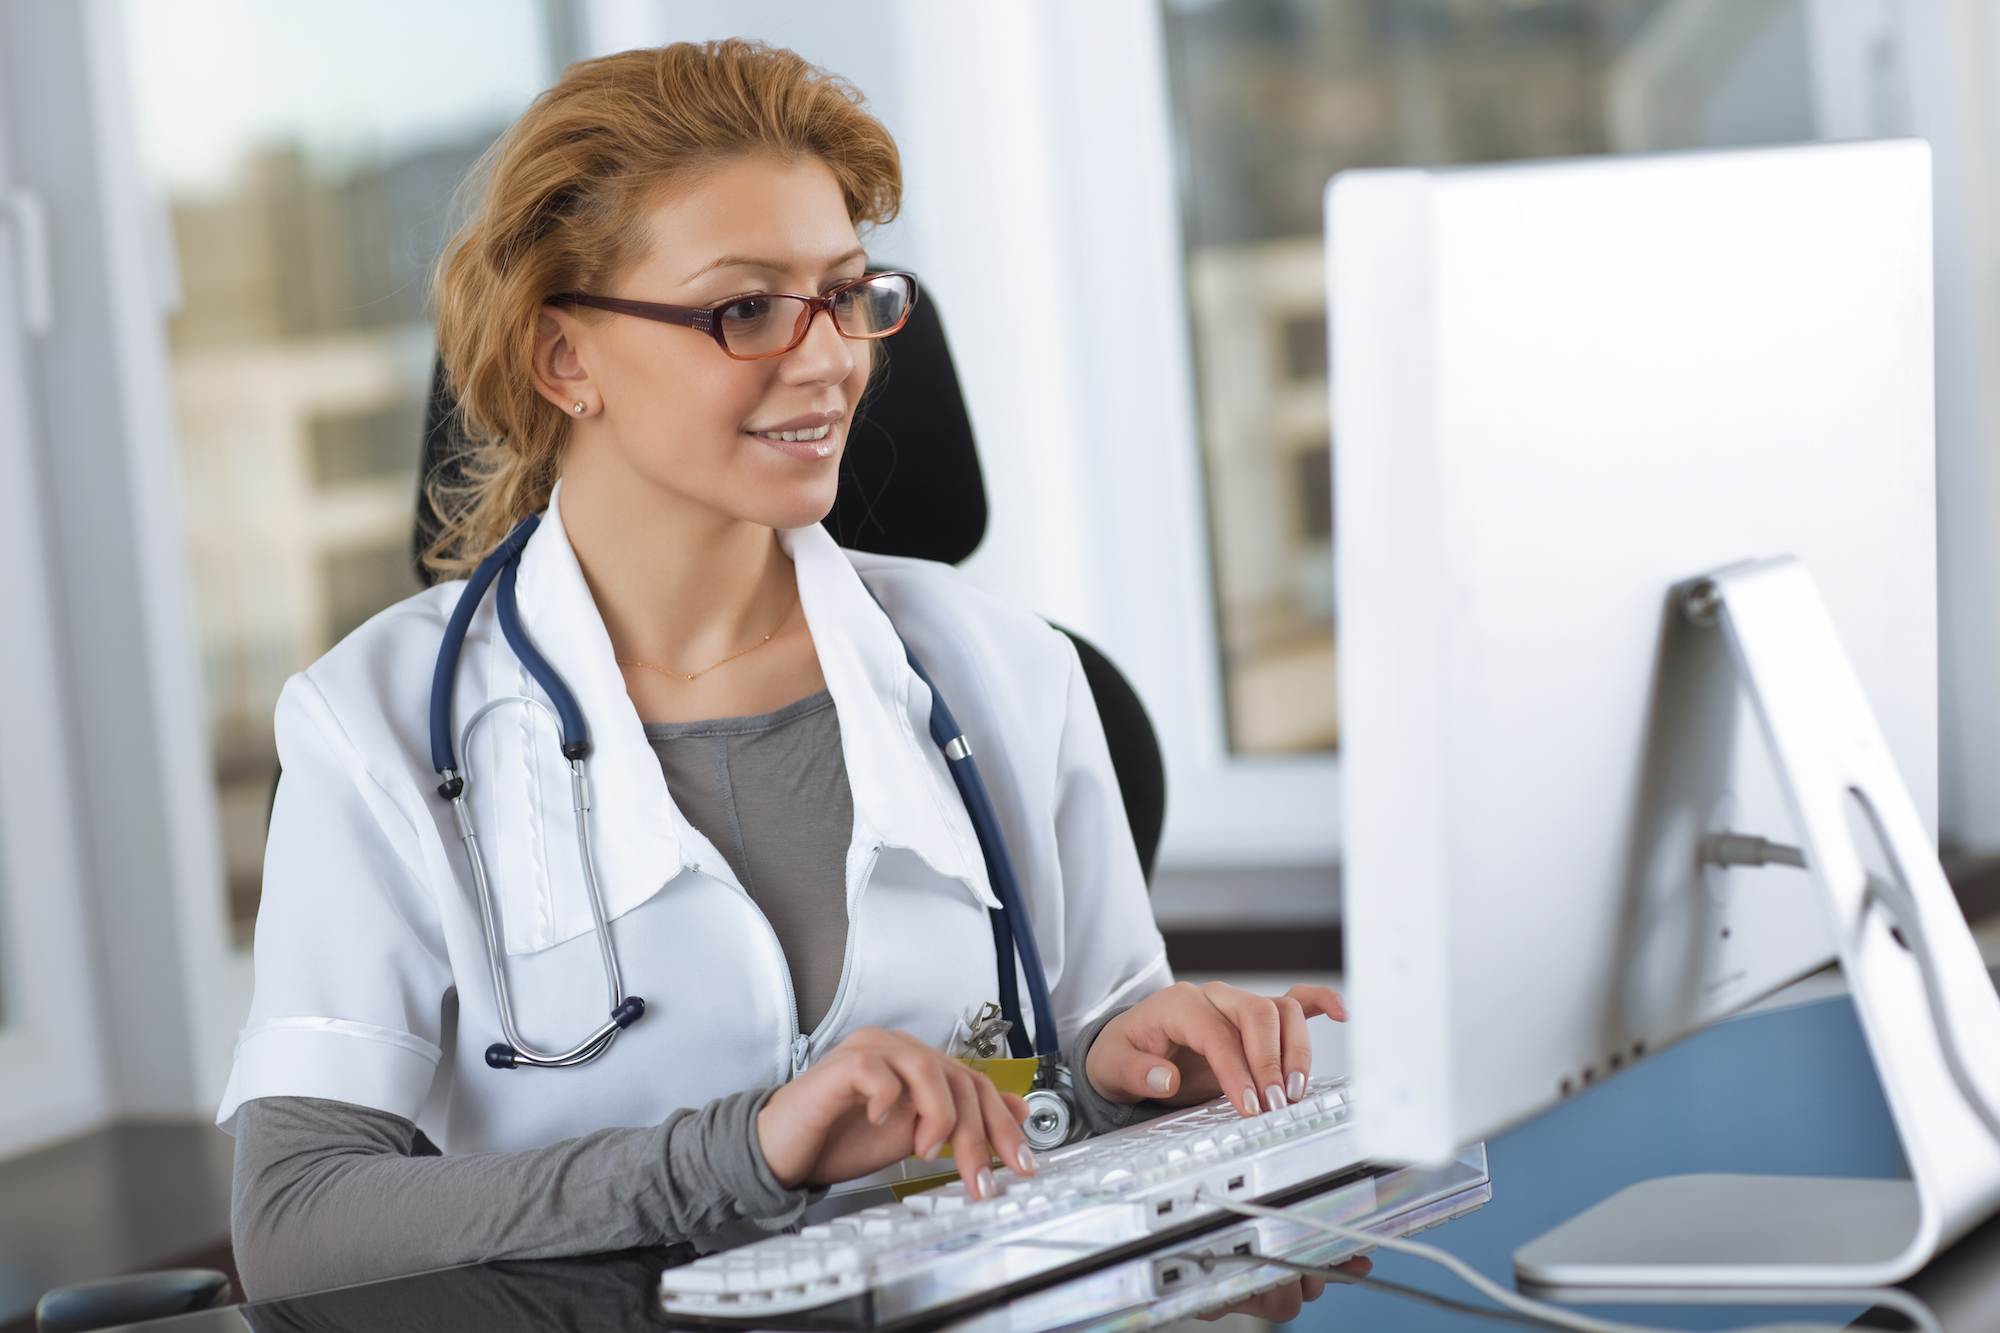 Medical Billing Coding School In Union Nj